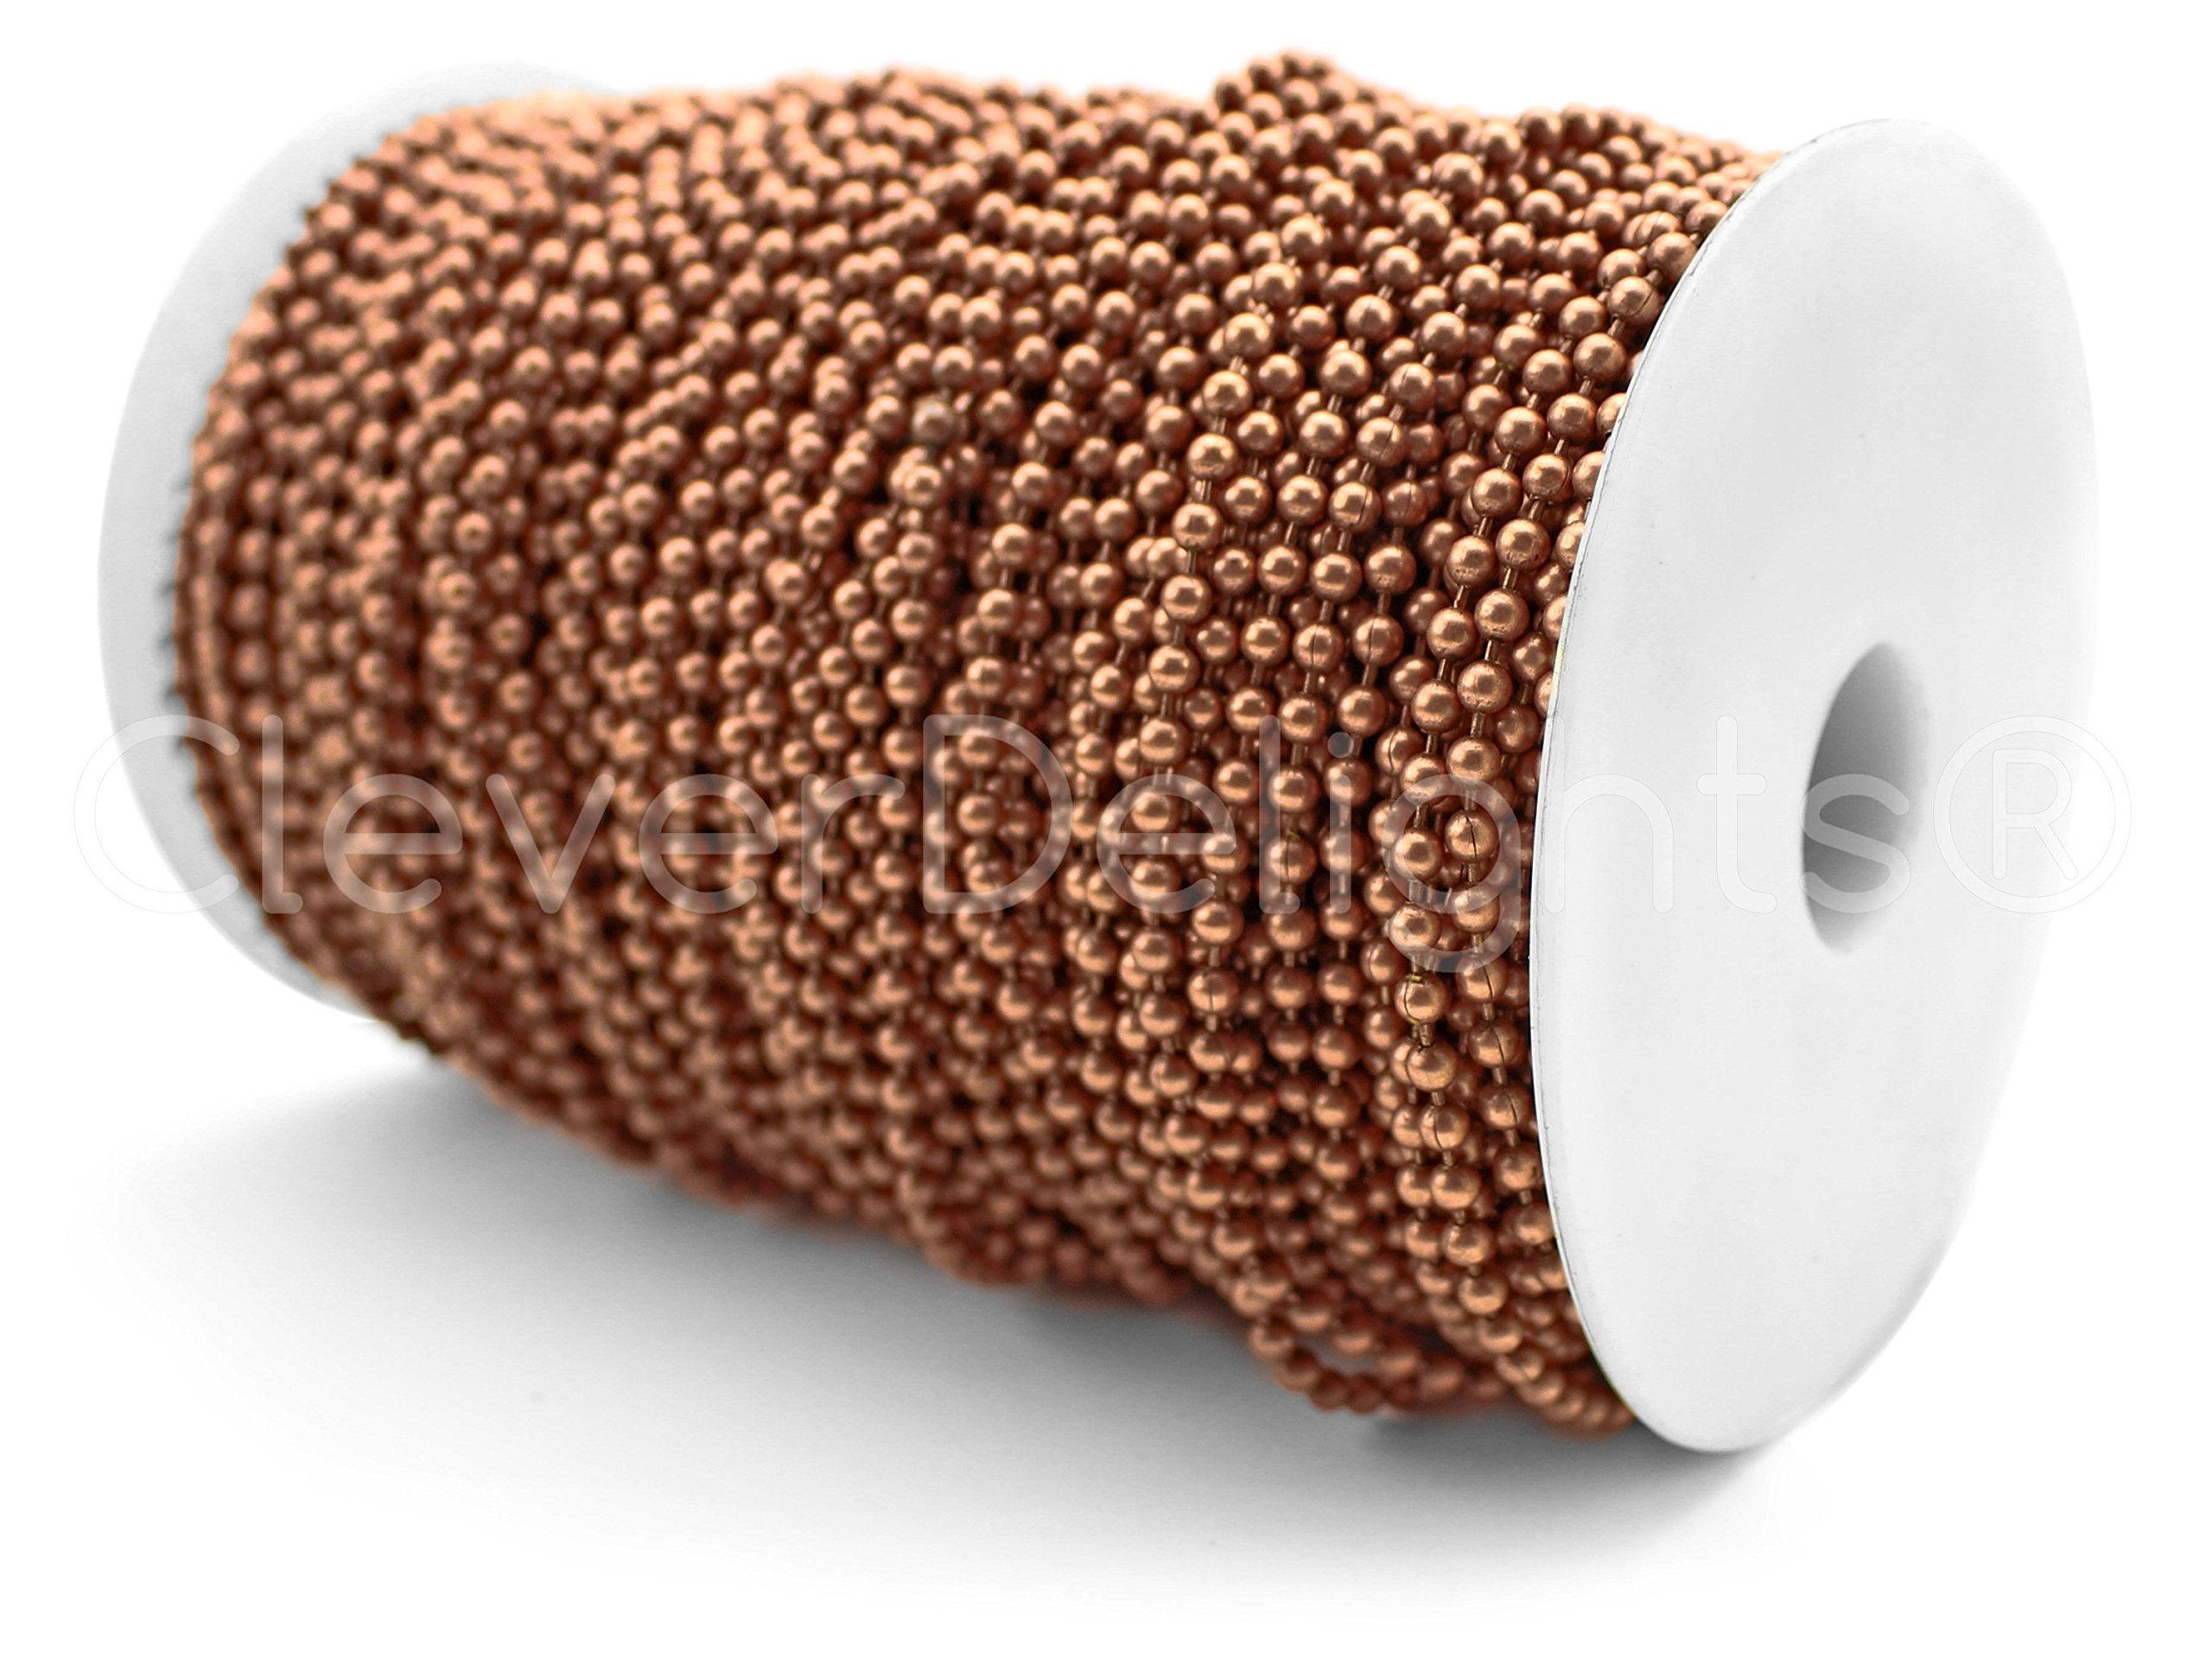 CleverDelights Ball Chain Spool - 330 Feet - 3.2mm Ball (#6 Size) - Antique Copper Color - 100 Meters by CleverDelights